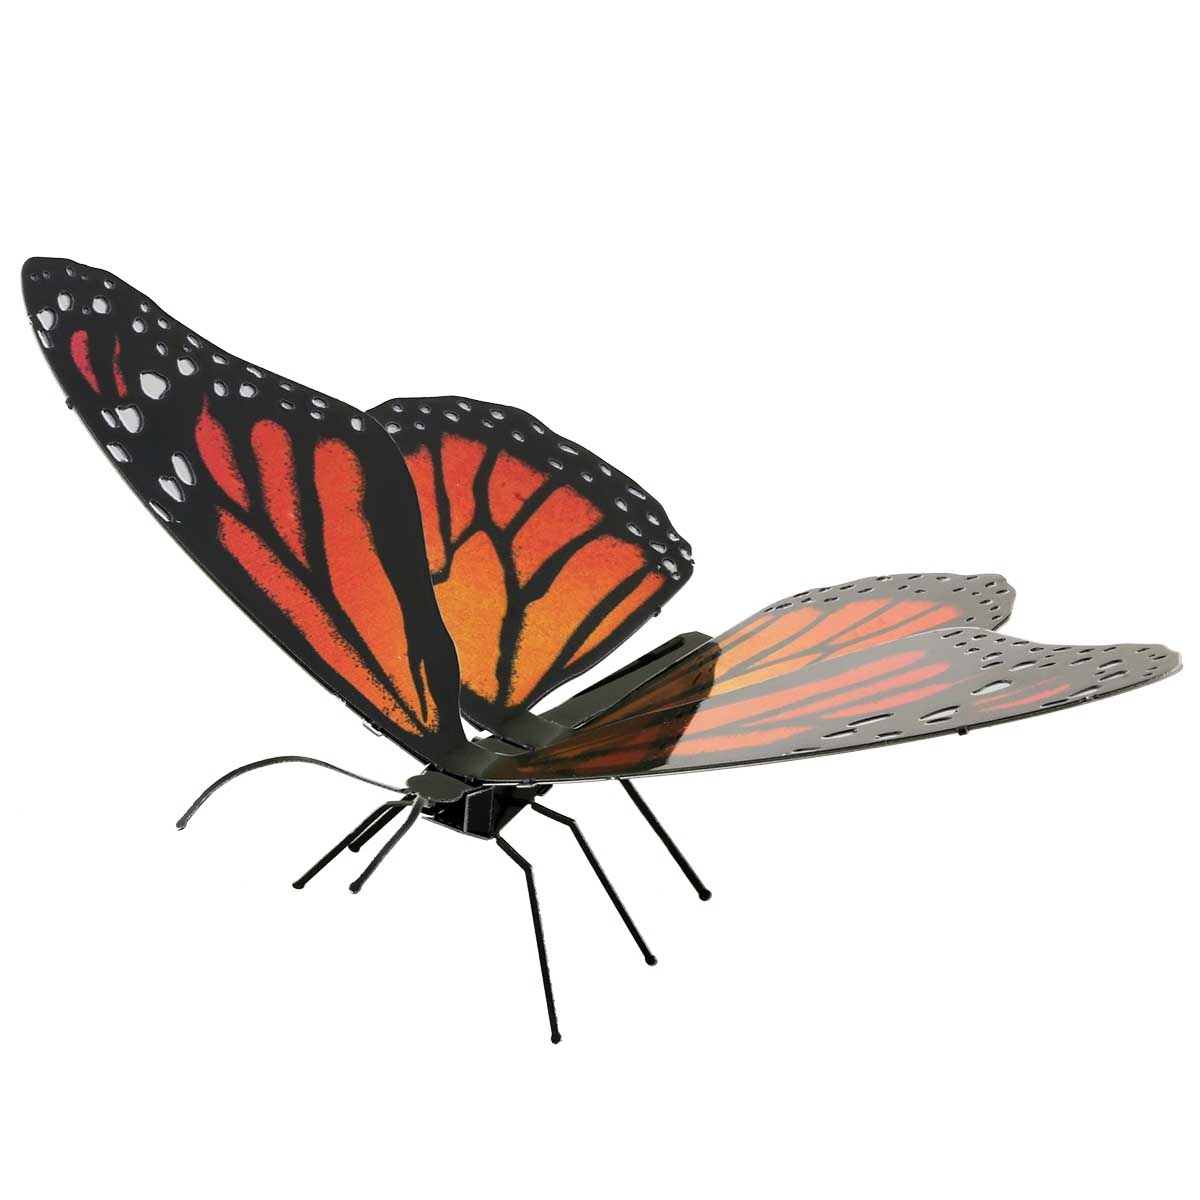 Monarch Butterflies and Insects 3D Puzzle